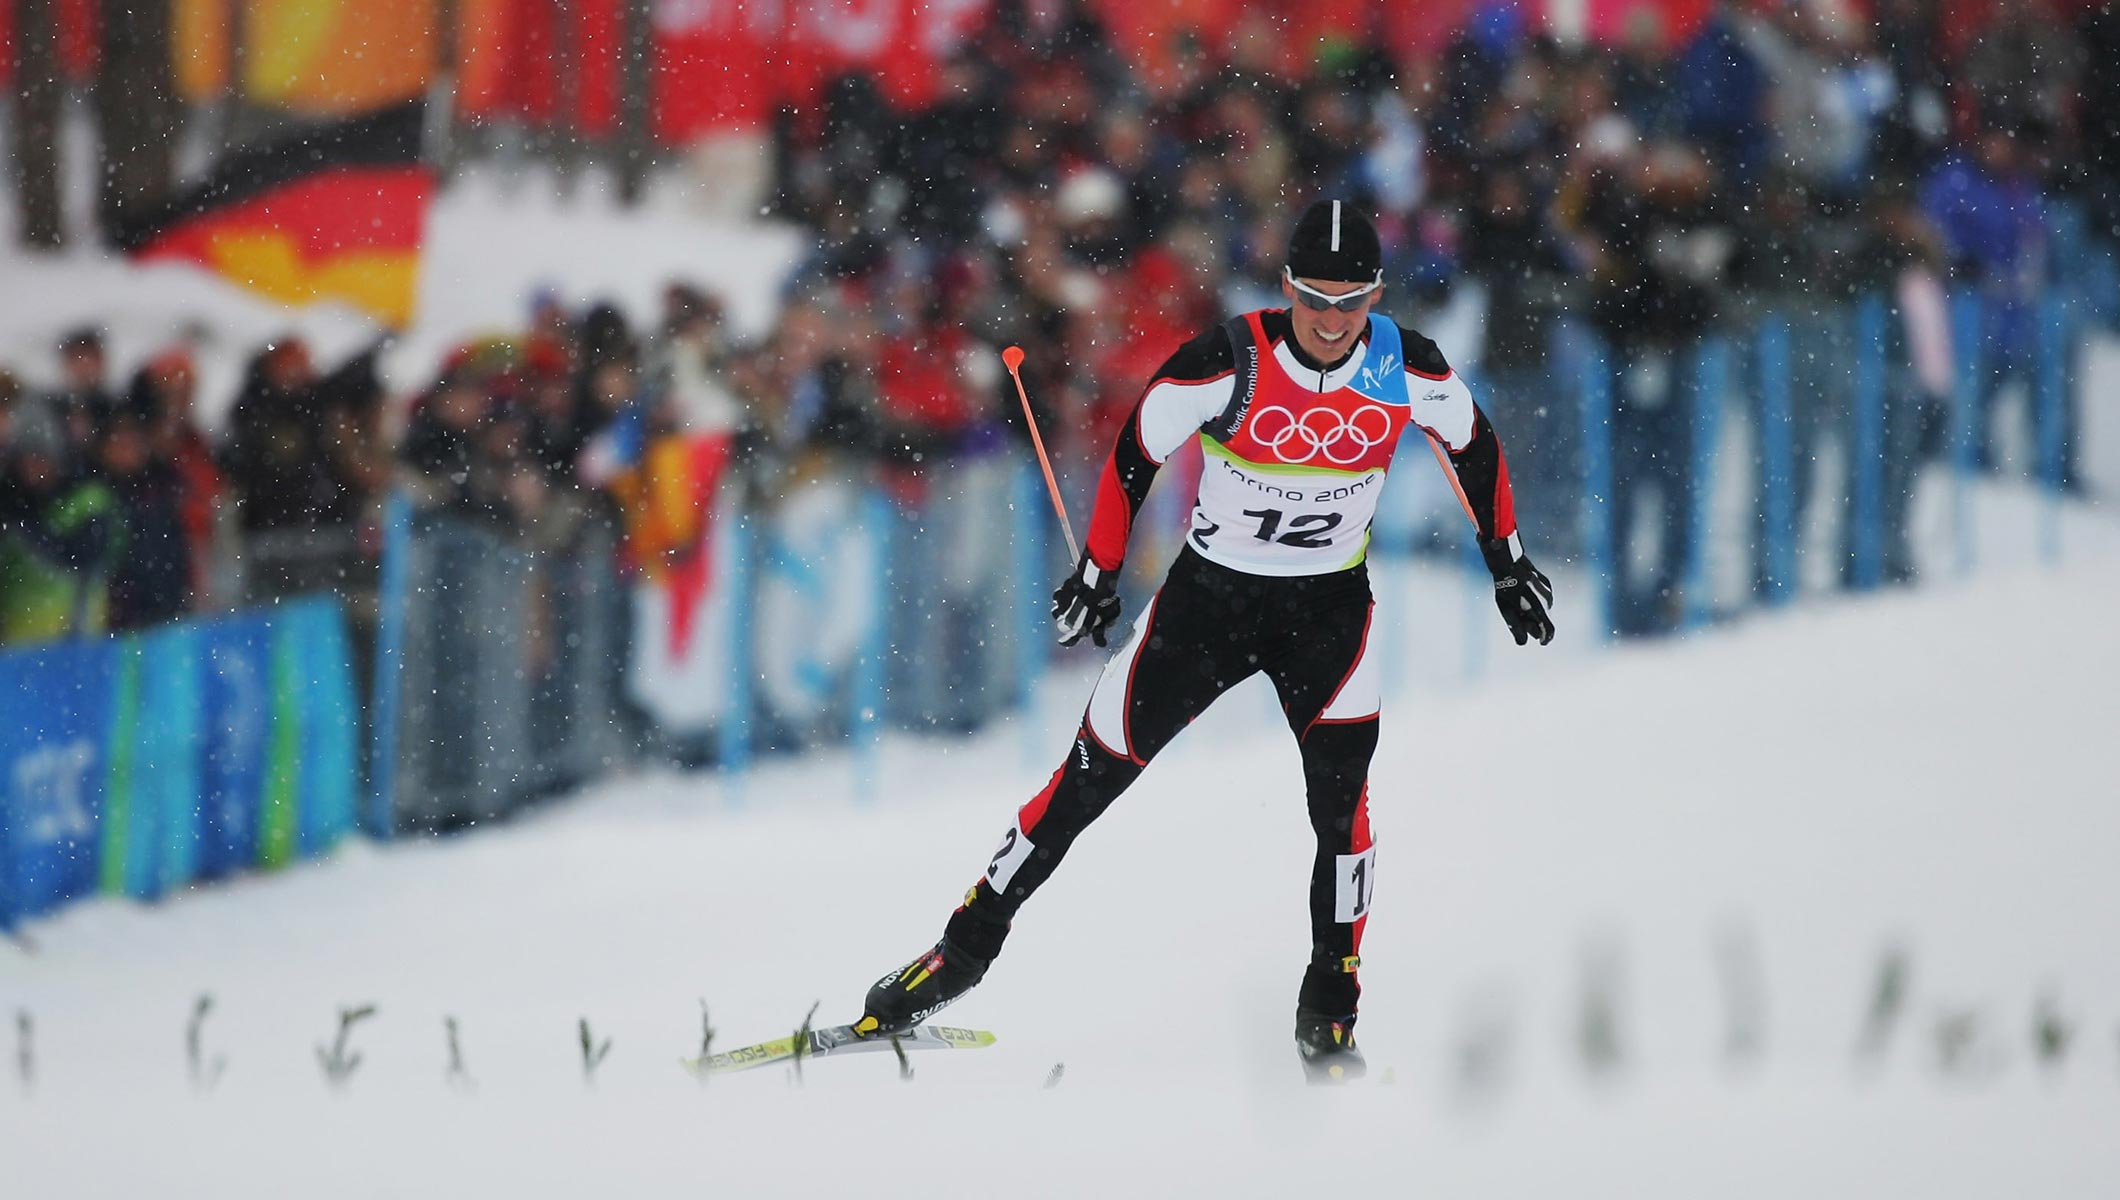 Cross Country Skiing At The 2020 Olympic Winter Games.Nordic Combined Winter Olympic Sport